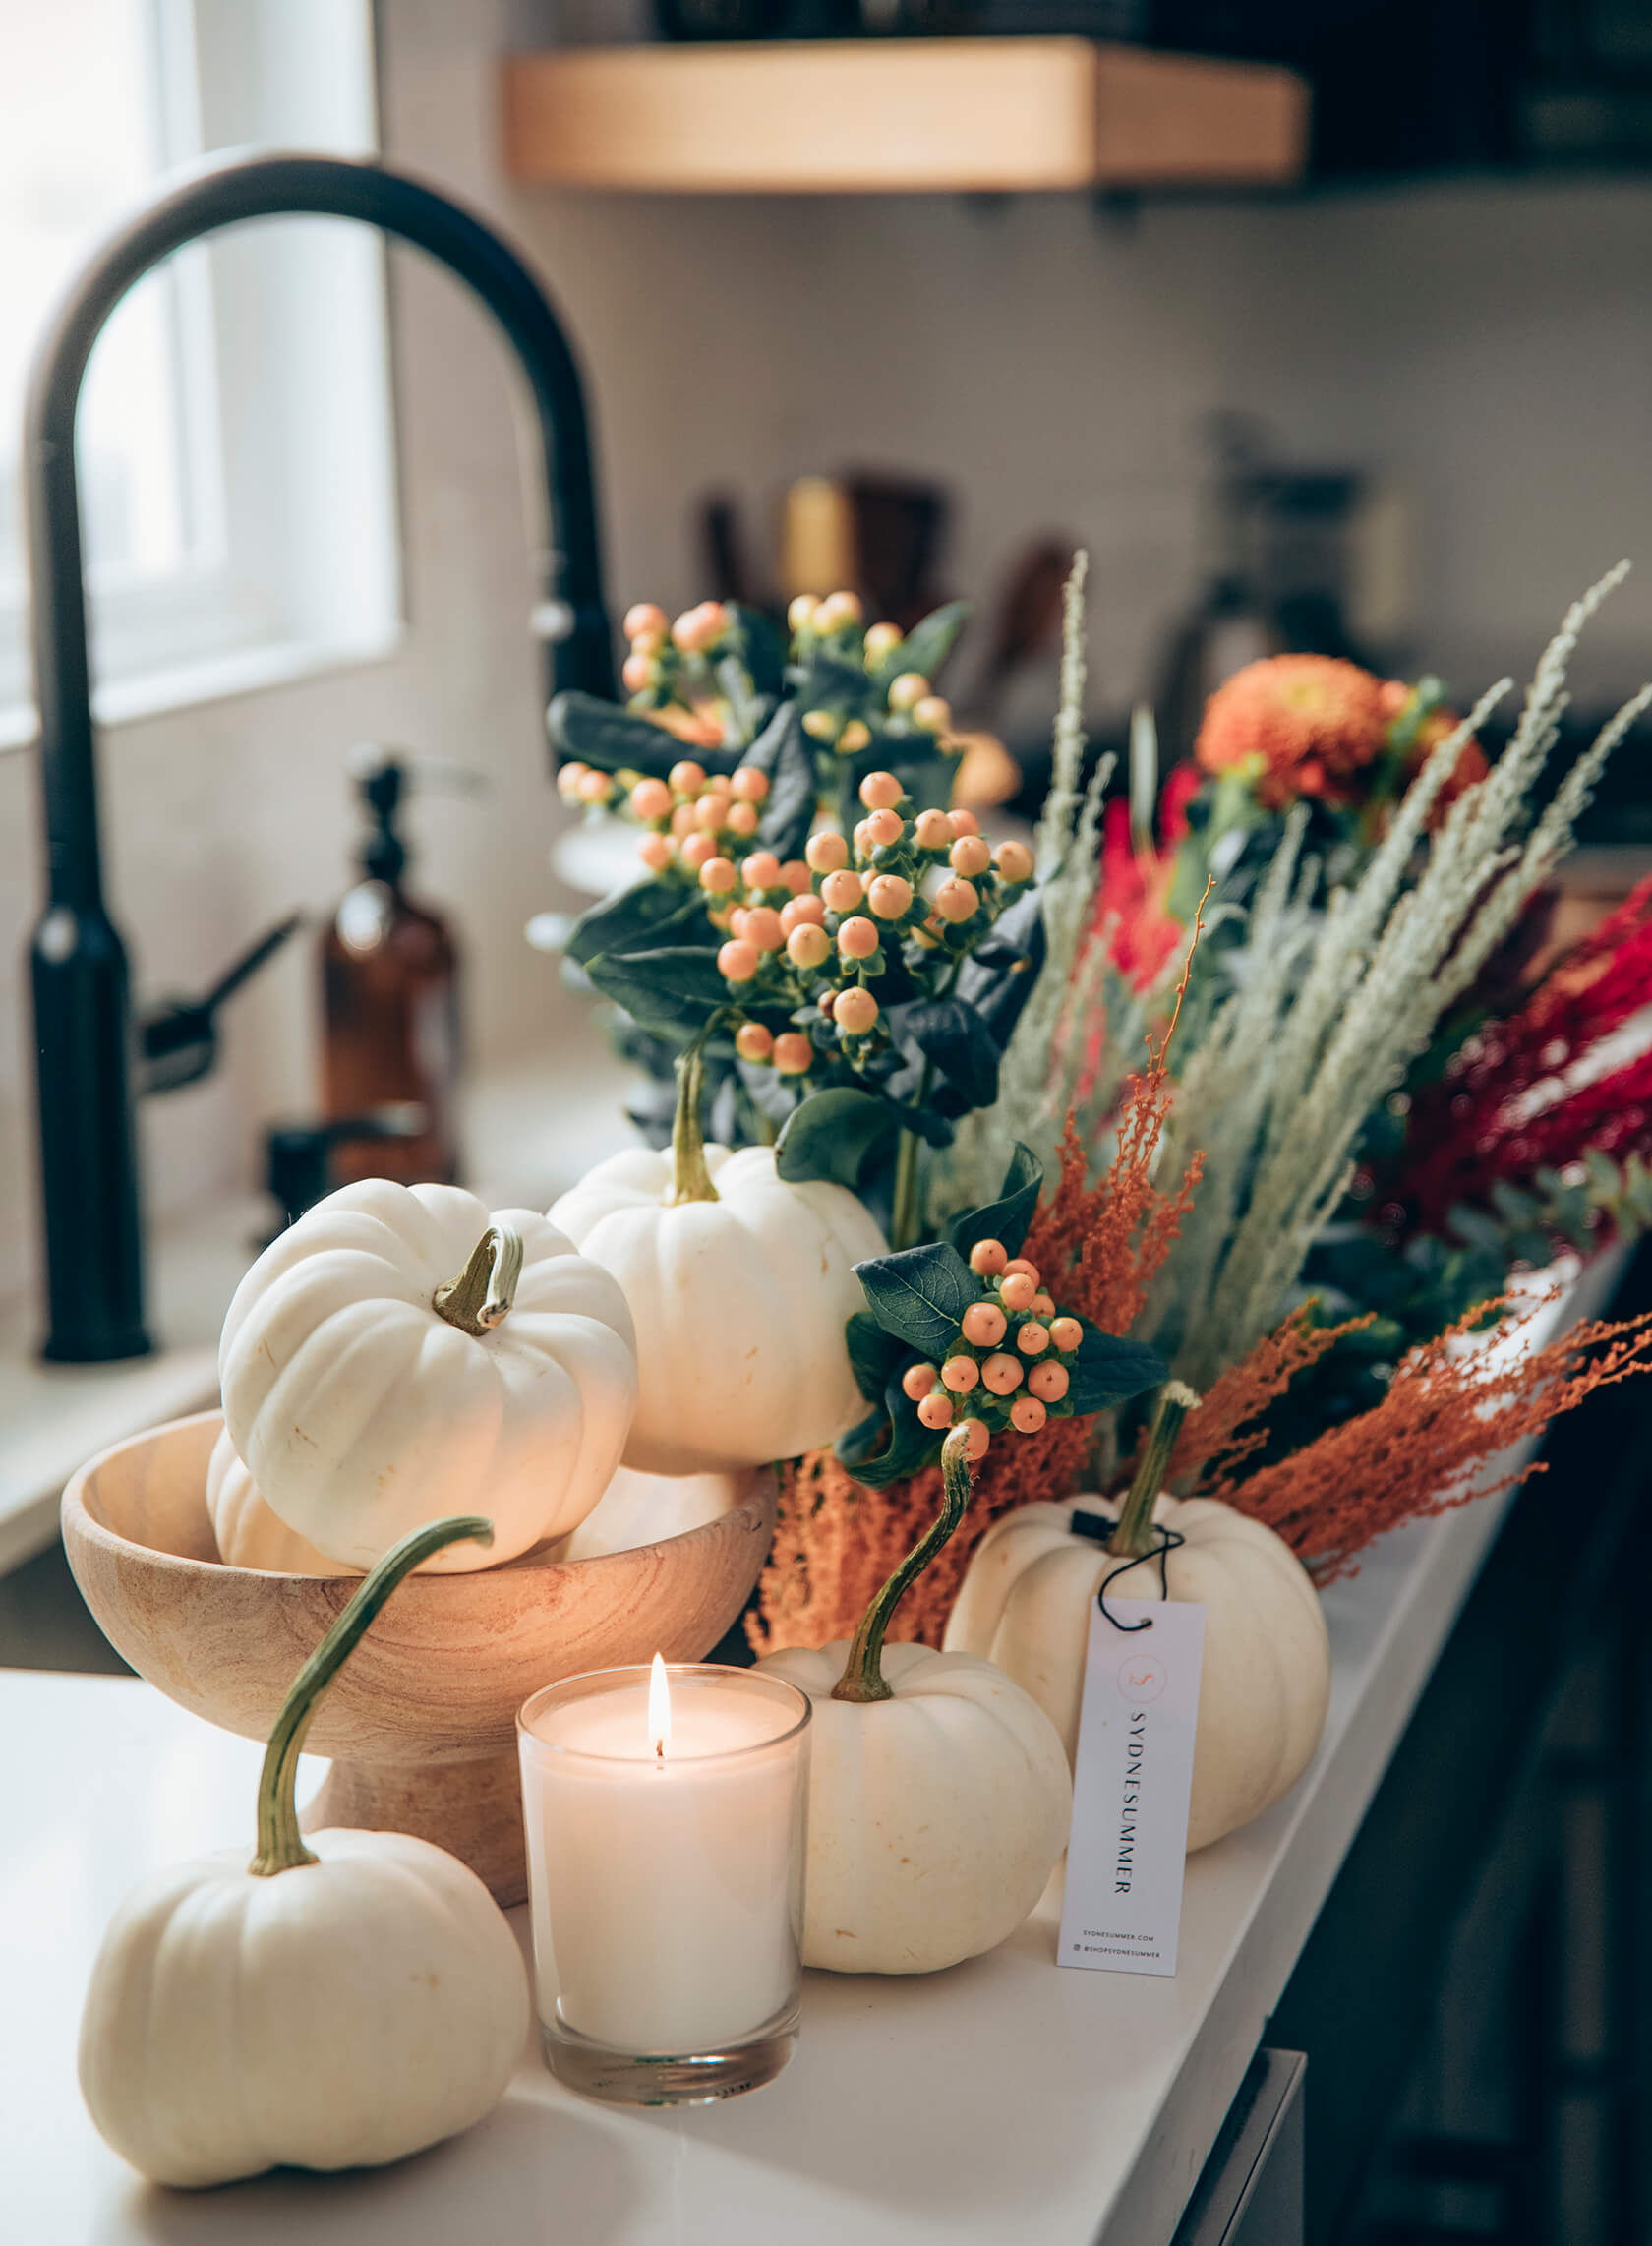 Sydne Style shows easy fall home decor ideas with white pumpkins and fresh flowers